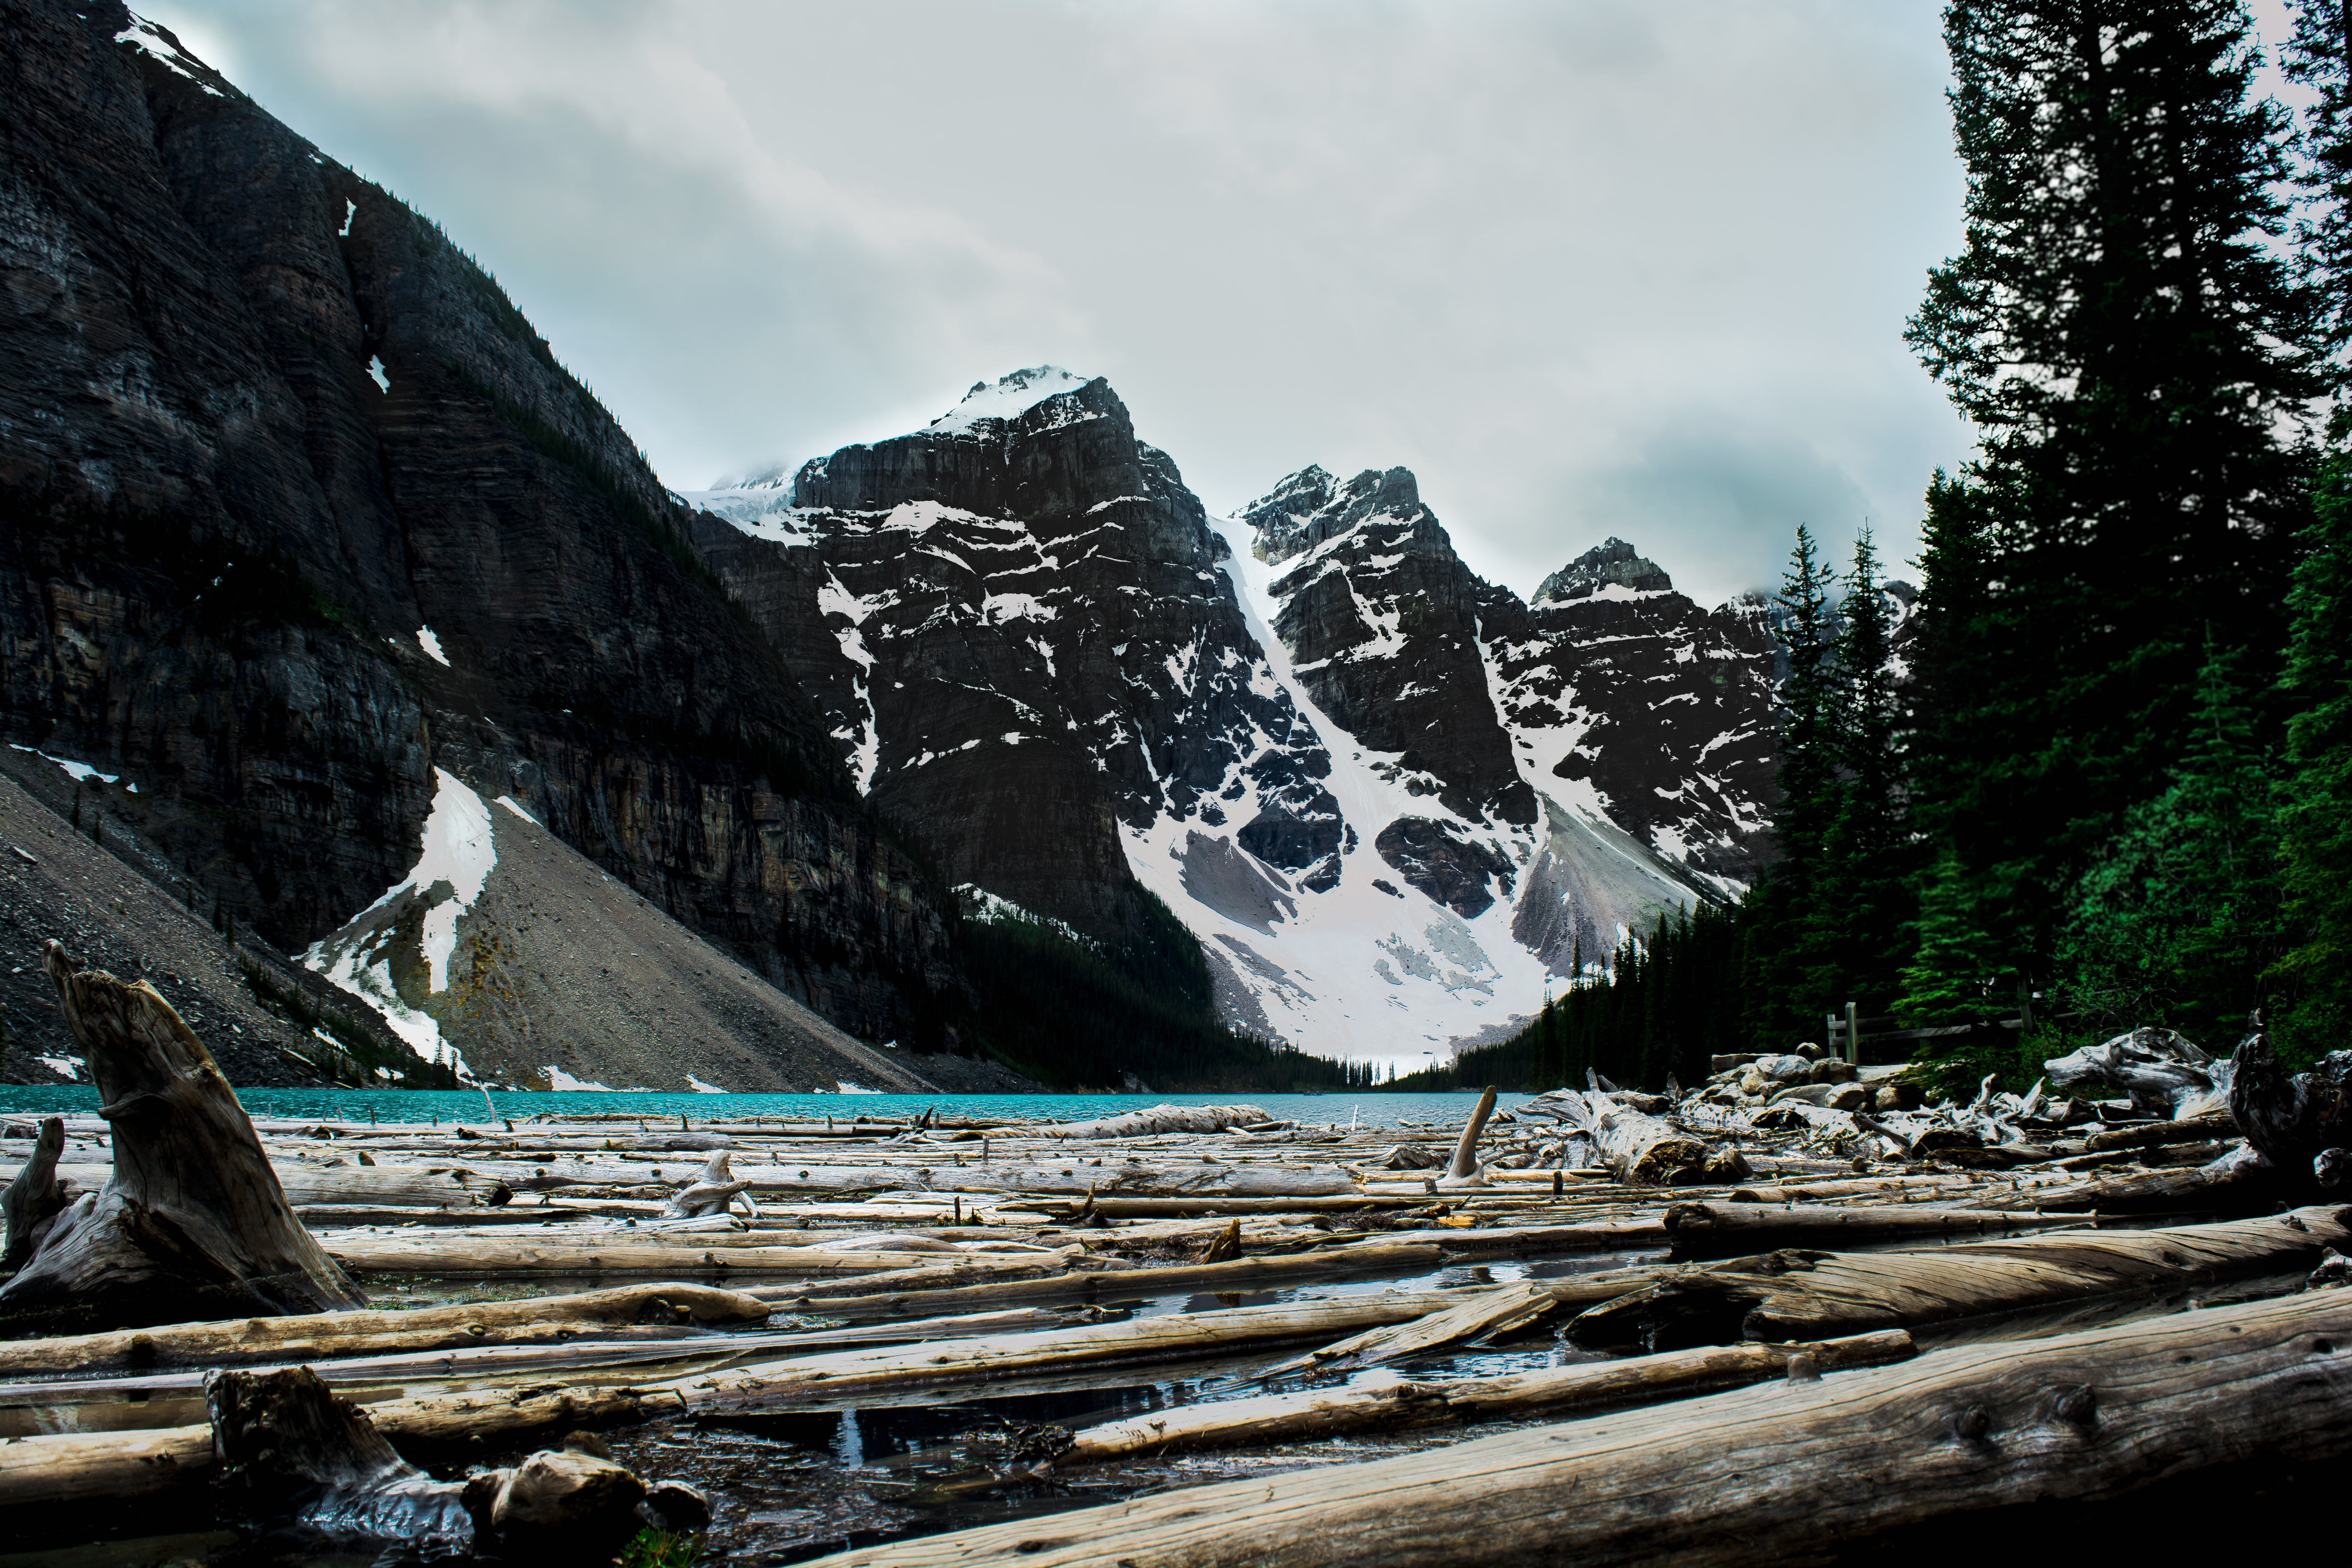 tree logs on body of water under mountains